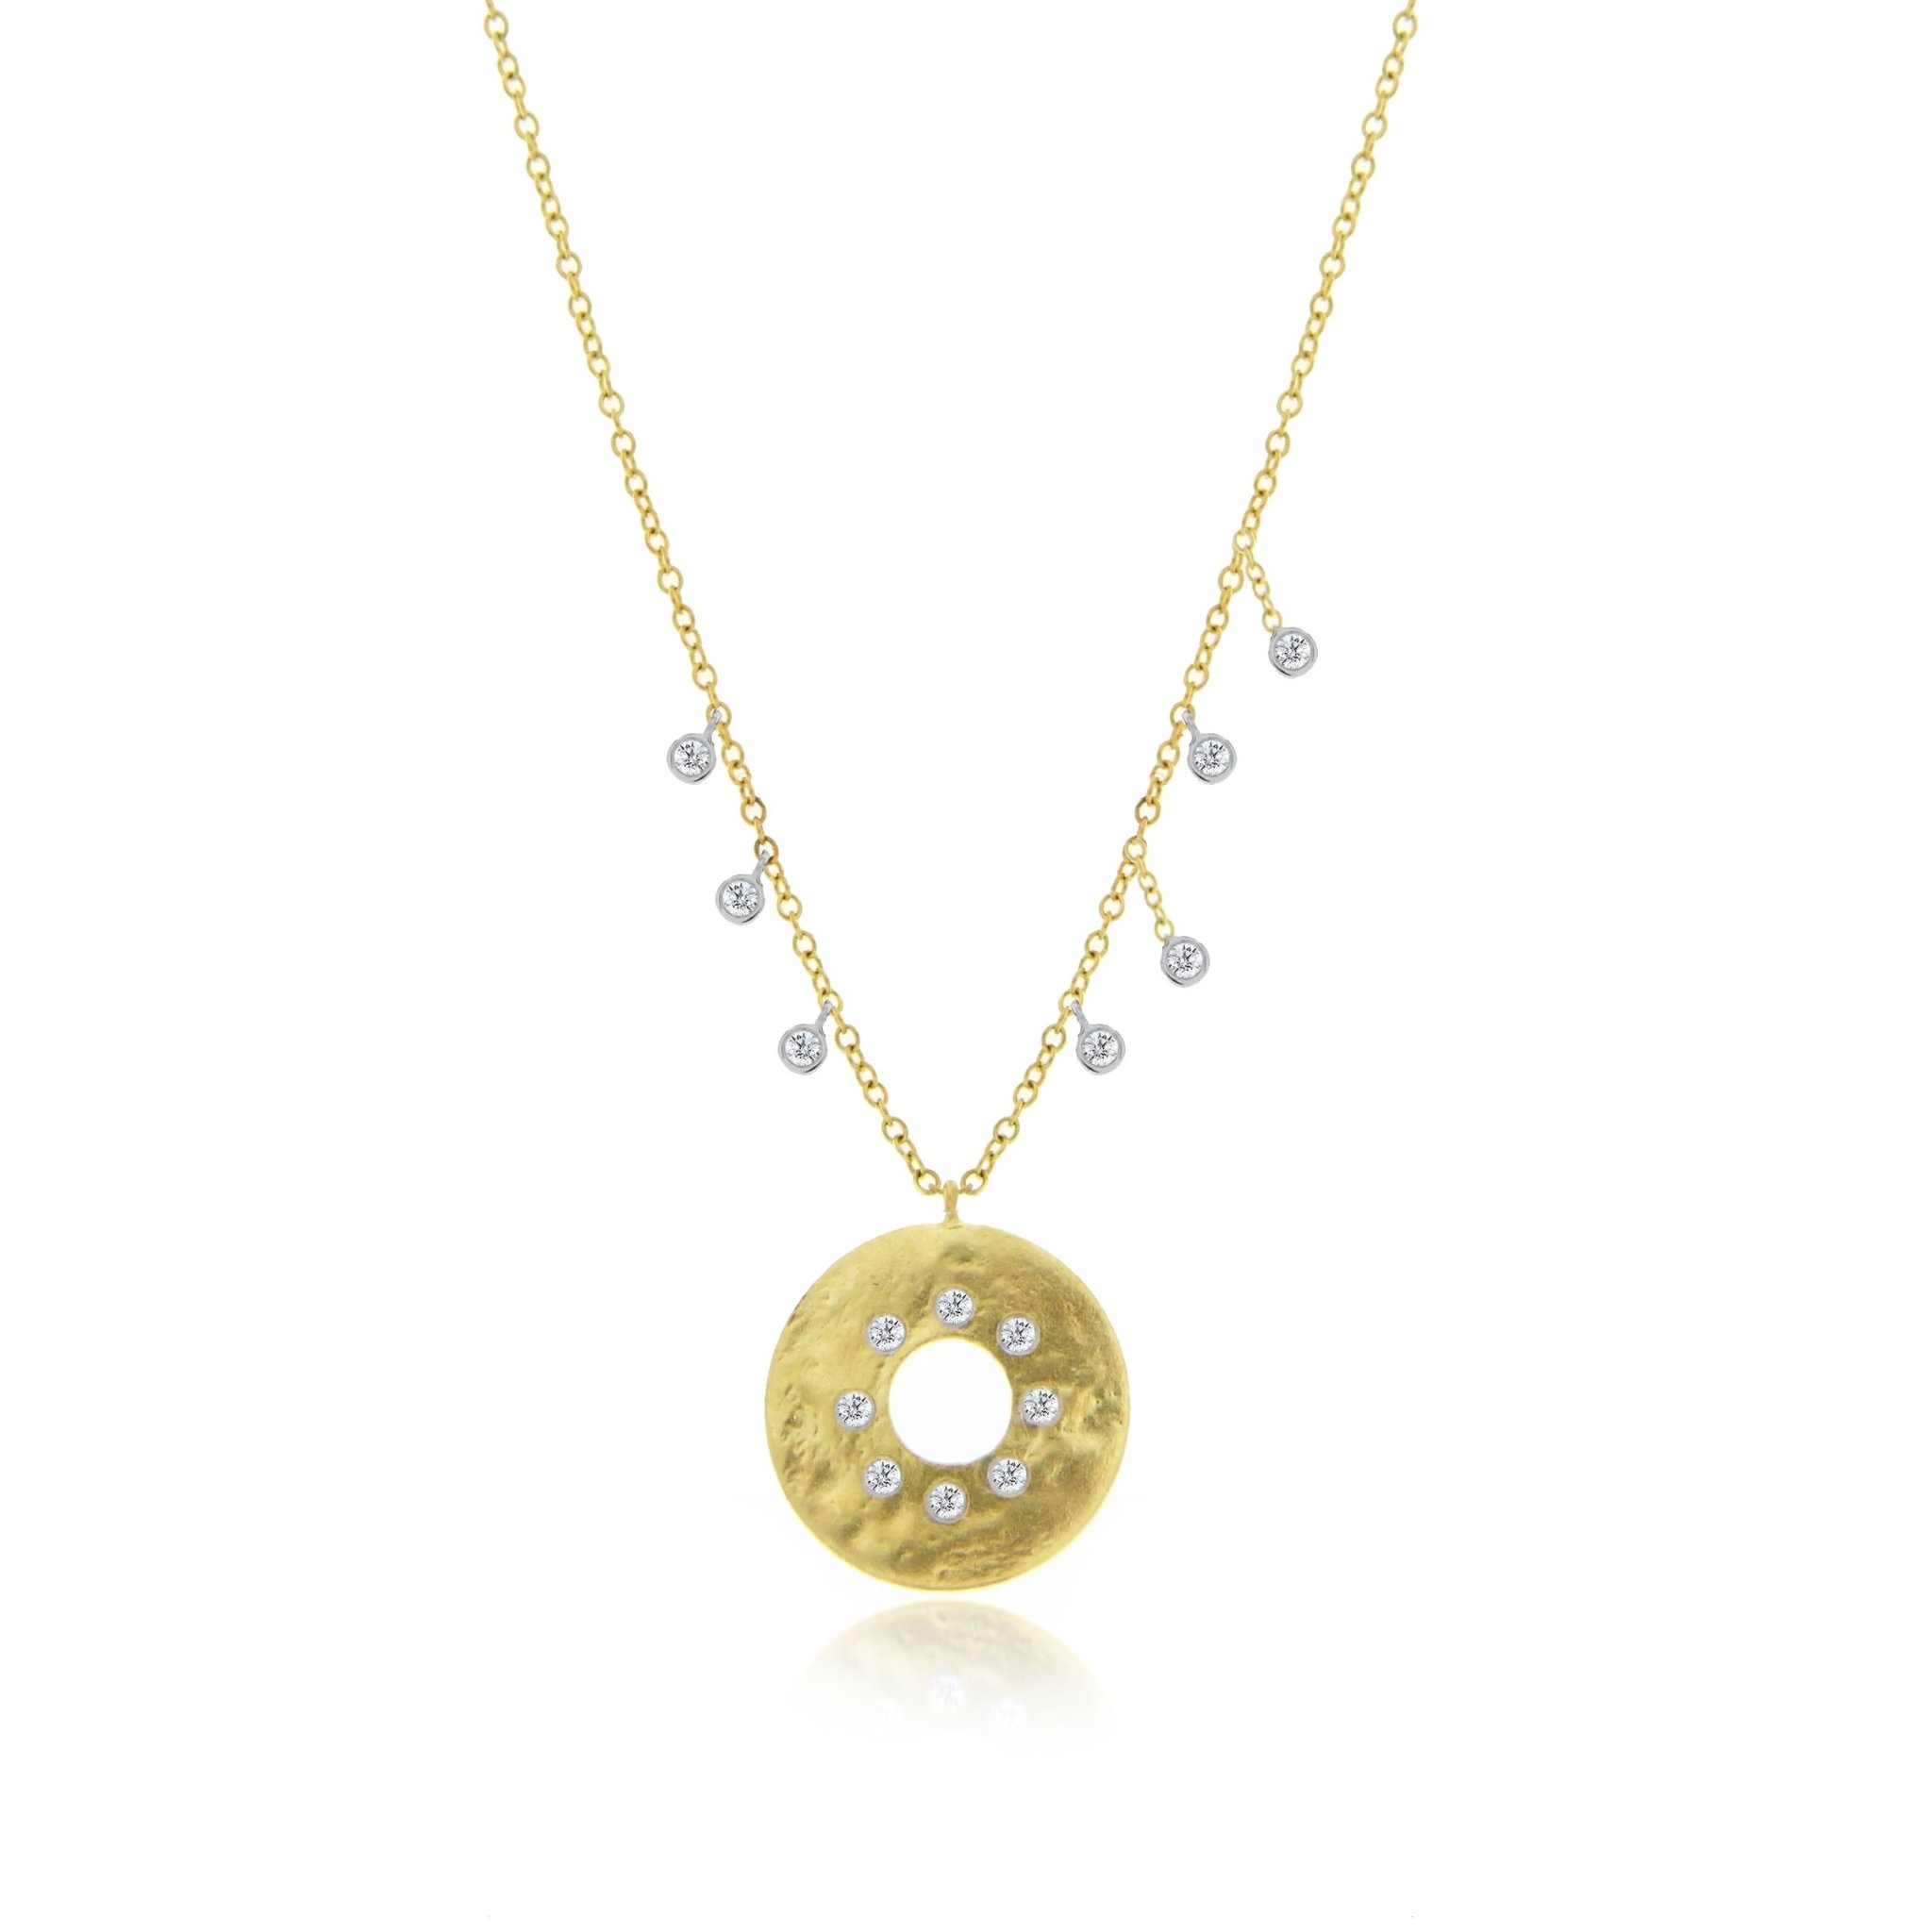 Meira T N11695 Gold Disk Diamond Necklace